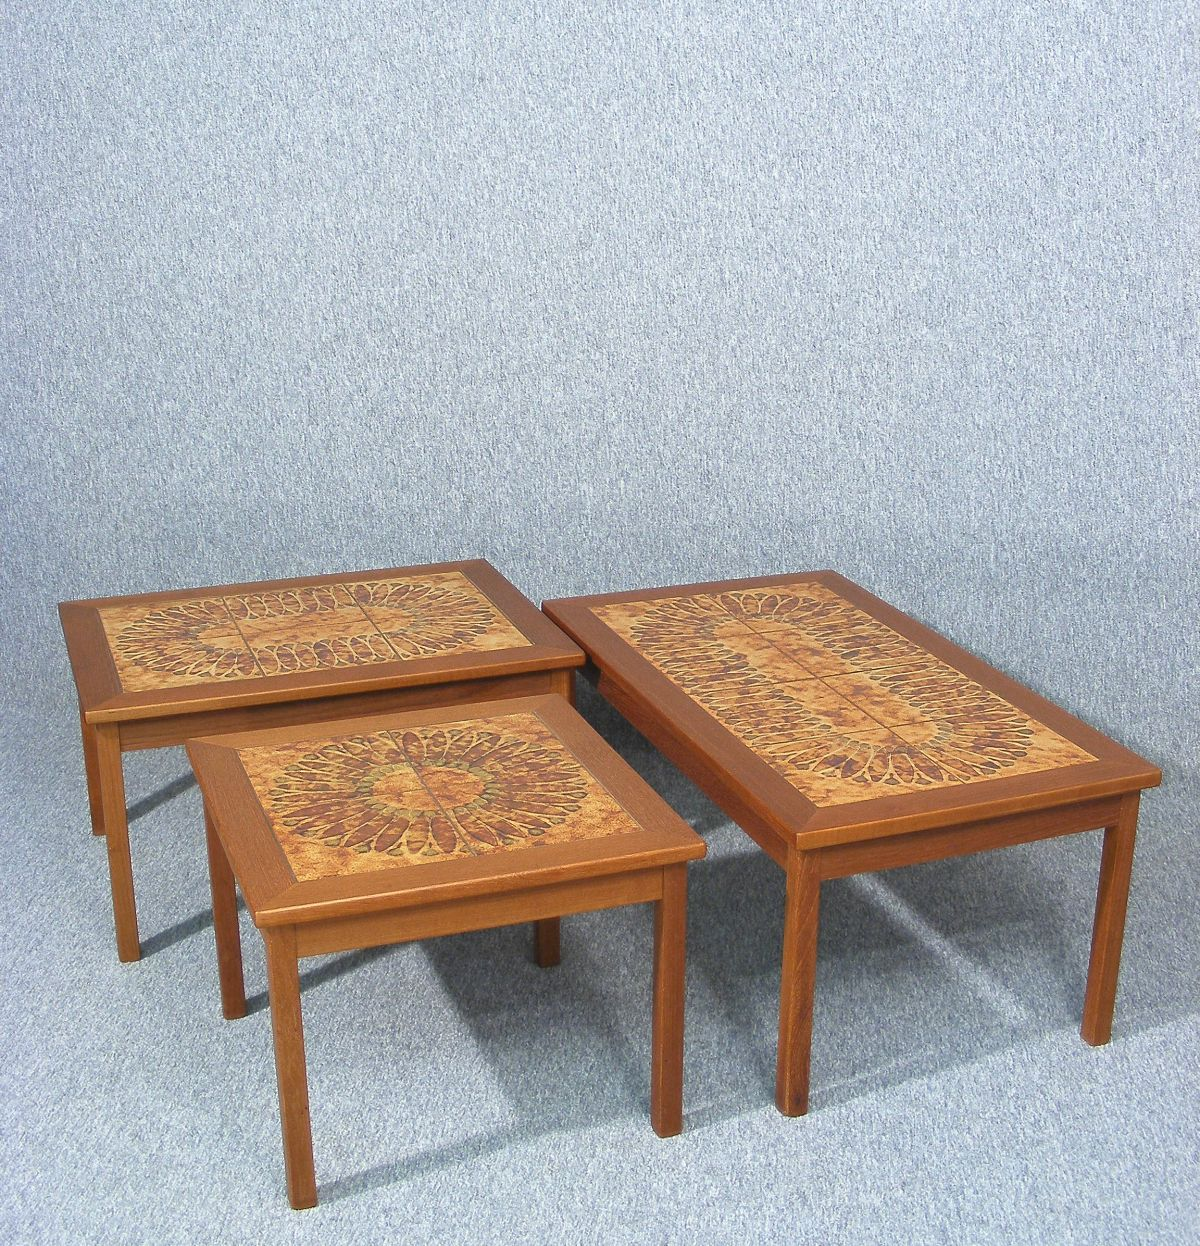 Retro light teak circular glass top coffee table nest of tables by - A Fabulous Vintage Retro Danish Teak And Tile Top Coffee Table By Toften One Of